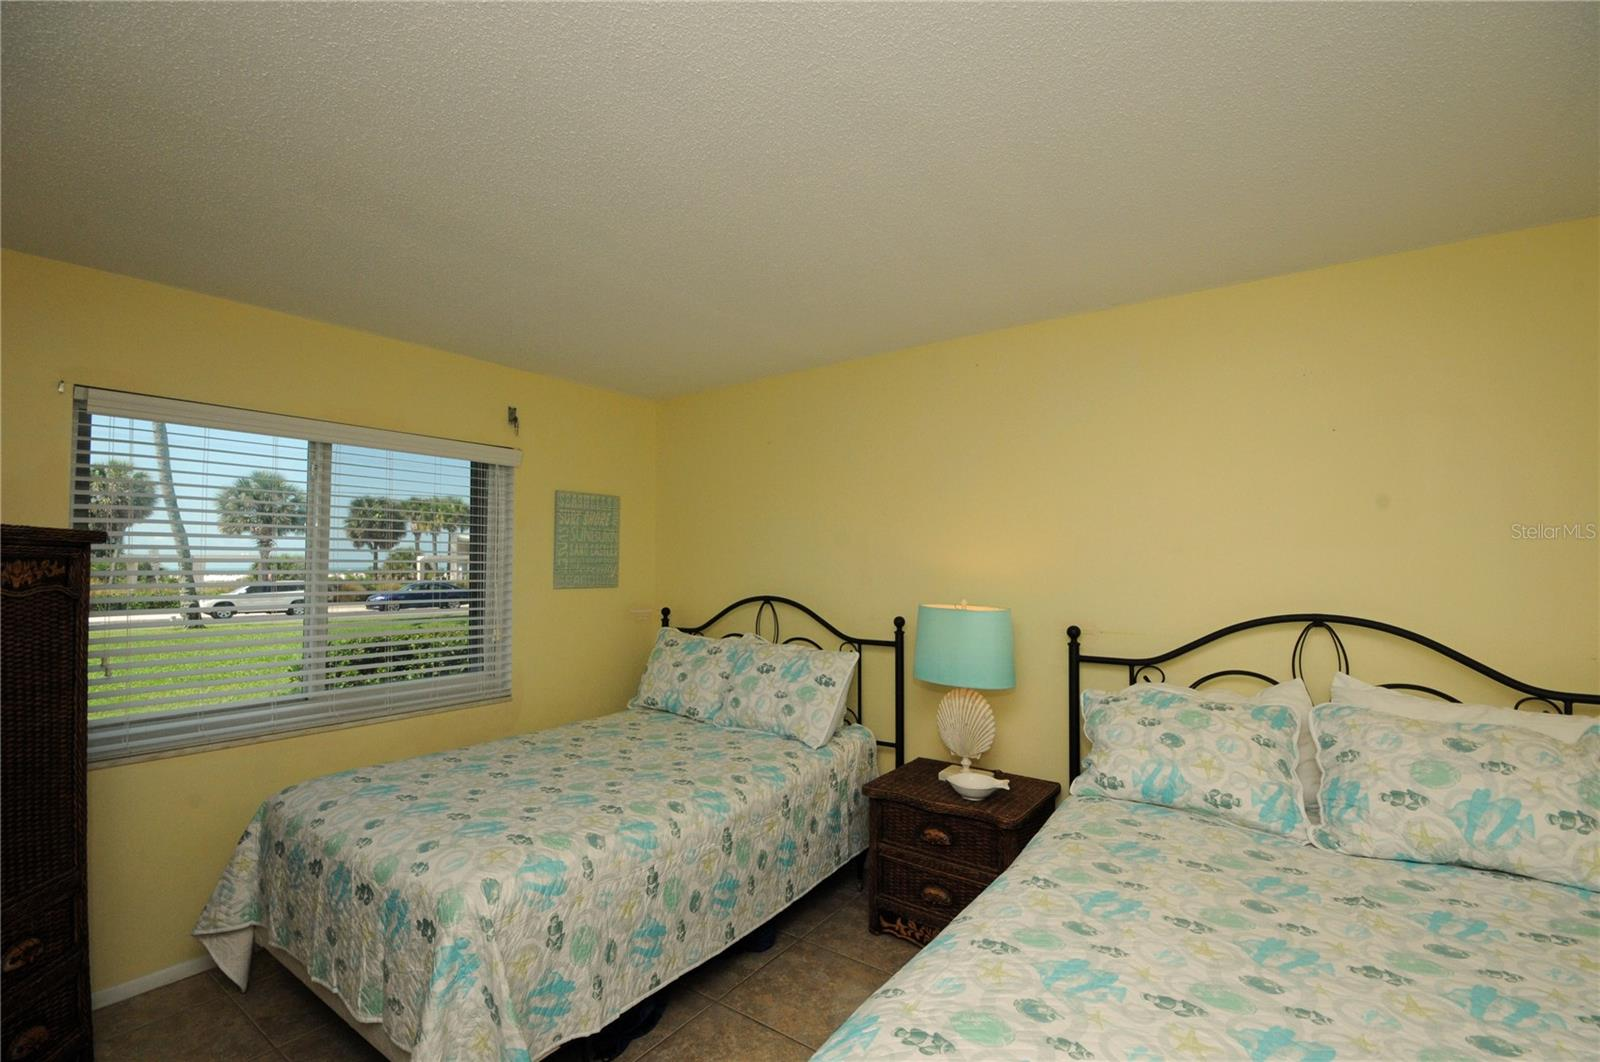 Condo for sale at 757 Beach Rd #106, Sarasota, FL 34242 - MLS Number is A4497792